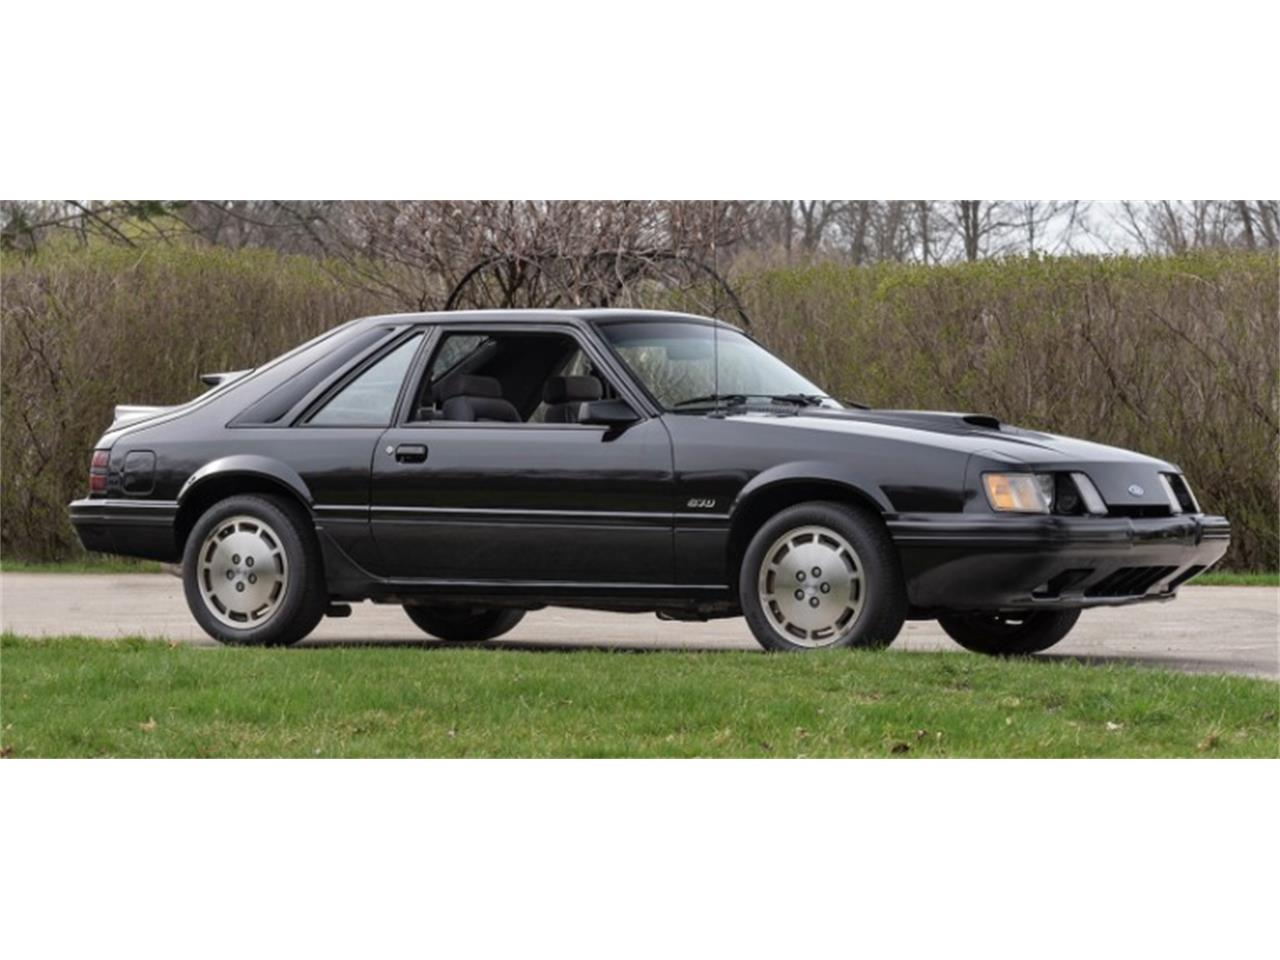 Large Picture of 1984 Mustang located in Mundelein Illinois - $12,997.00 - Q46S